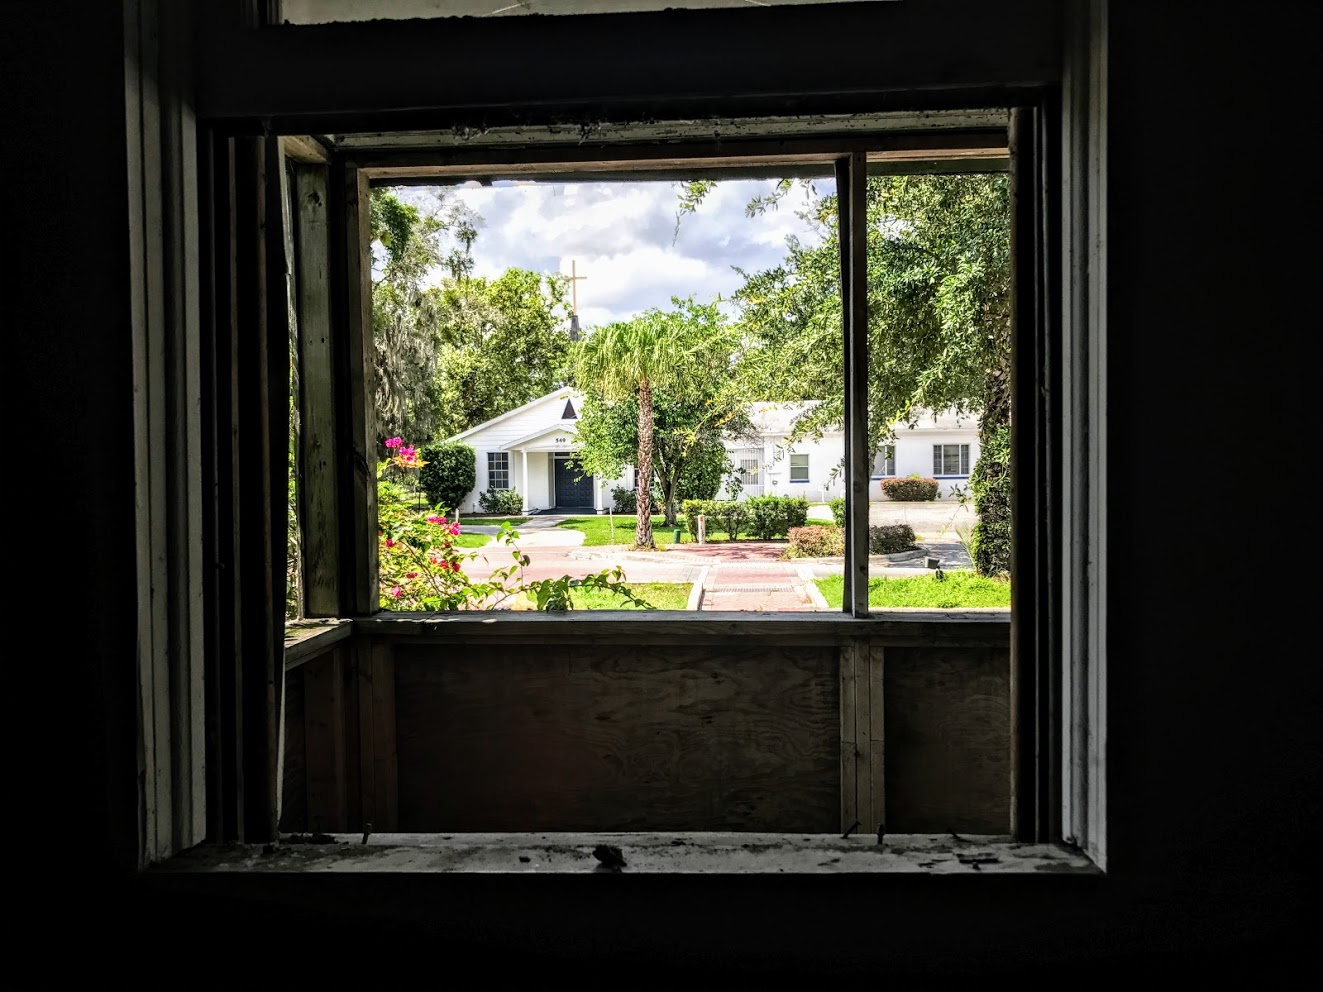 A look out of The Historic Thomas House to St. Lawrence Church that sits across the street. (Photo courtisy Dr. Scot French)